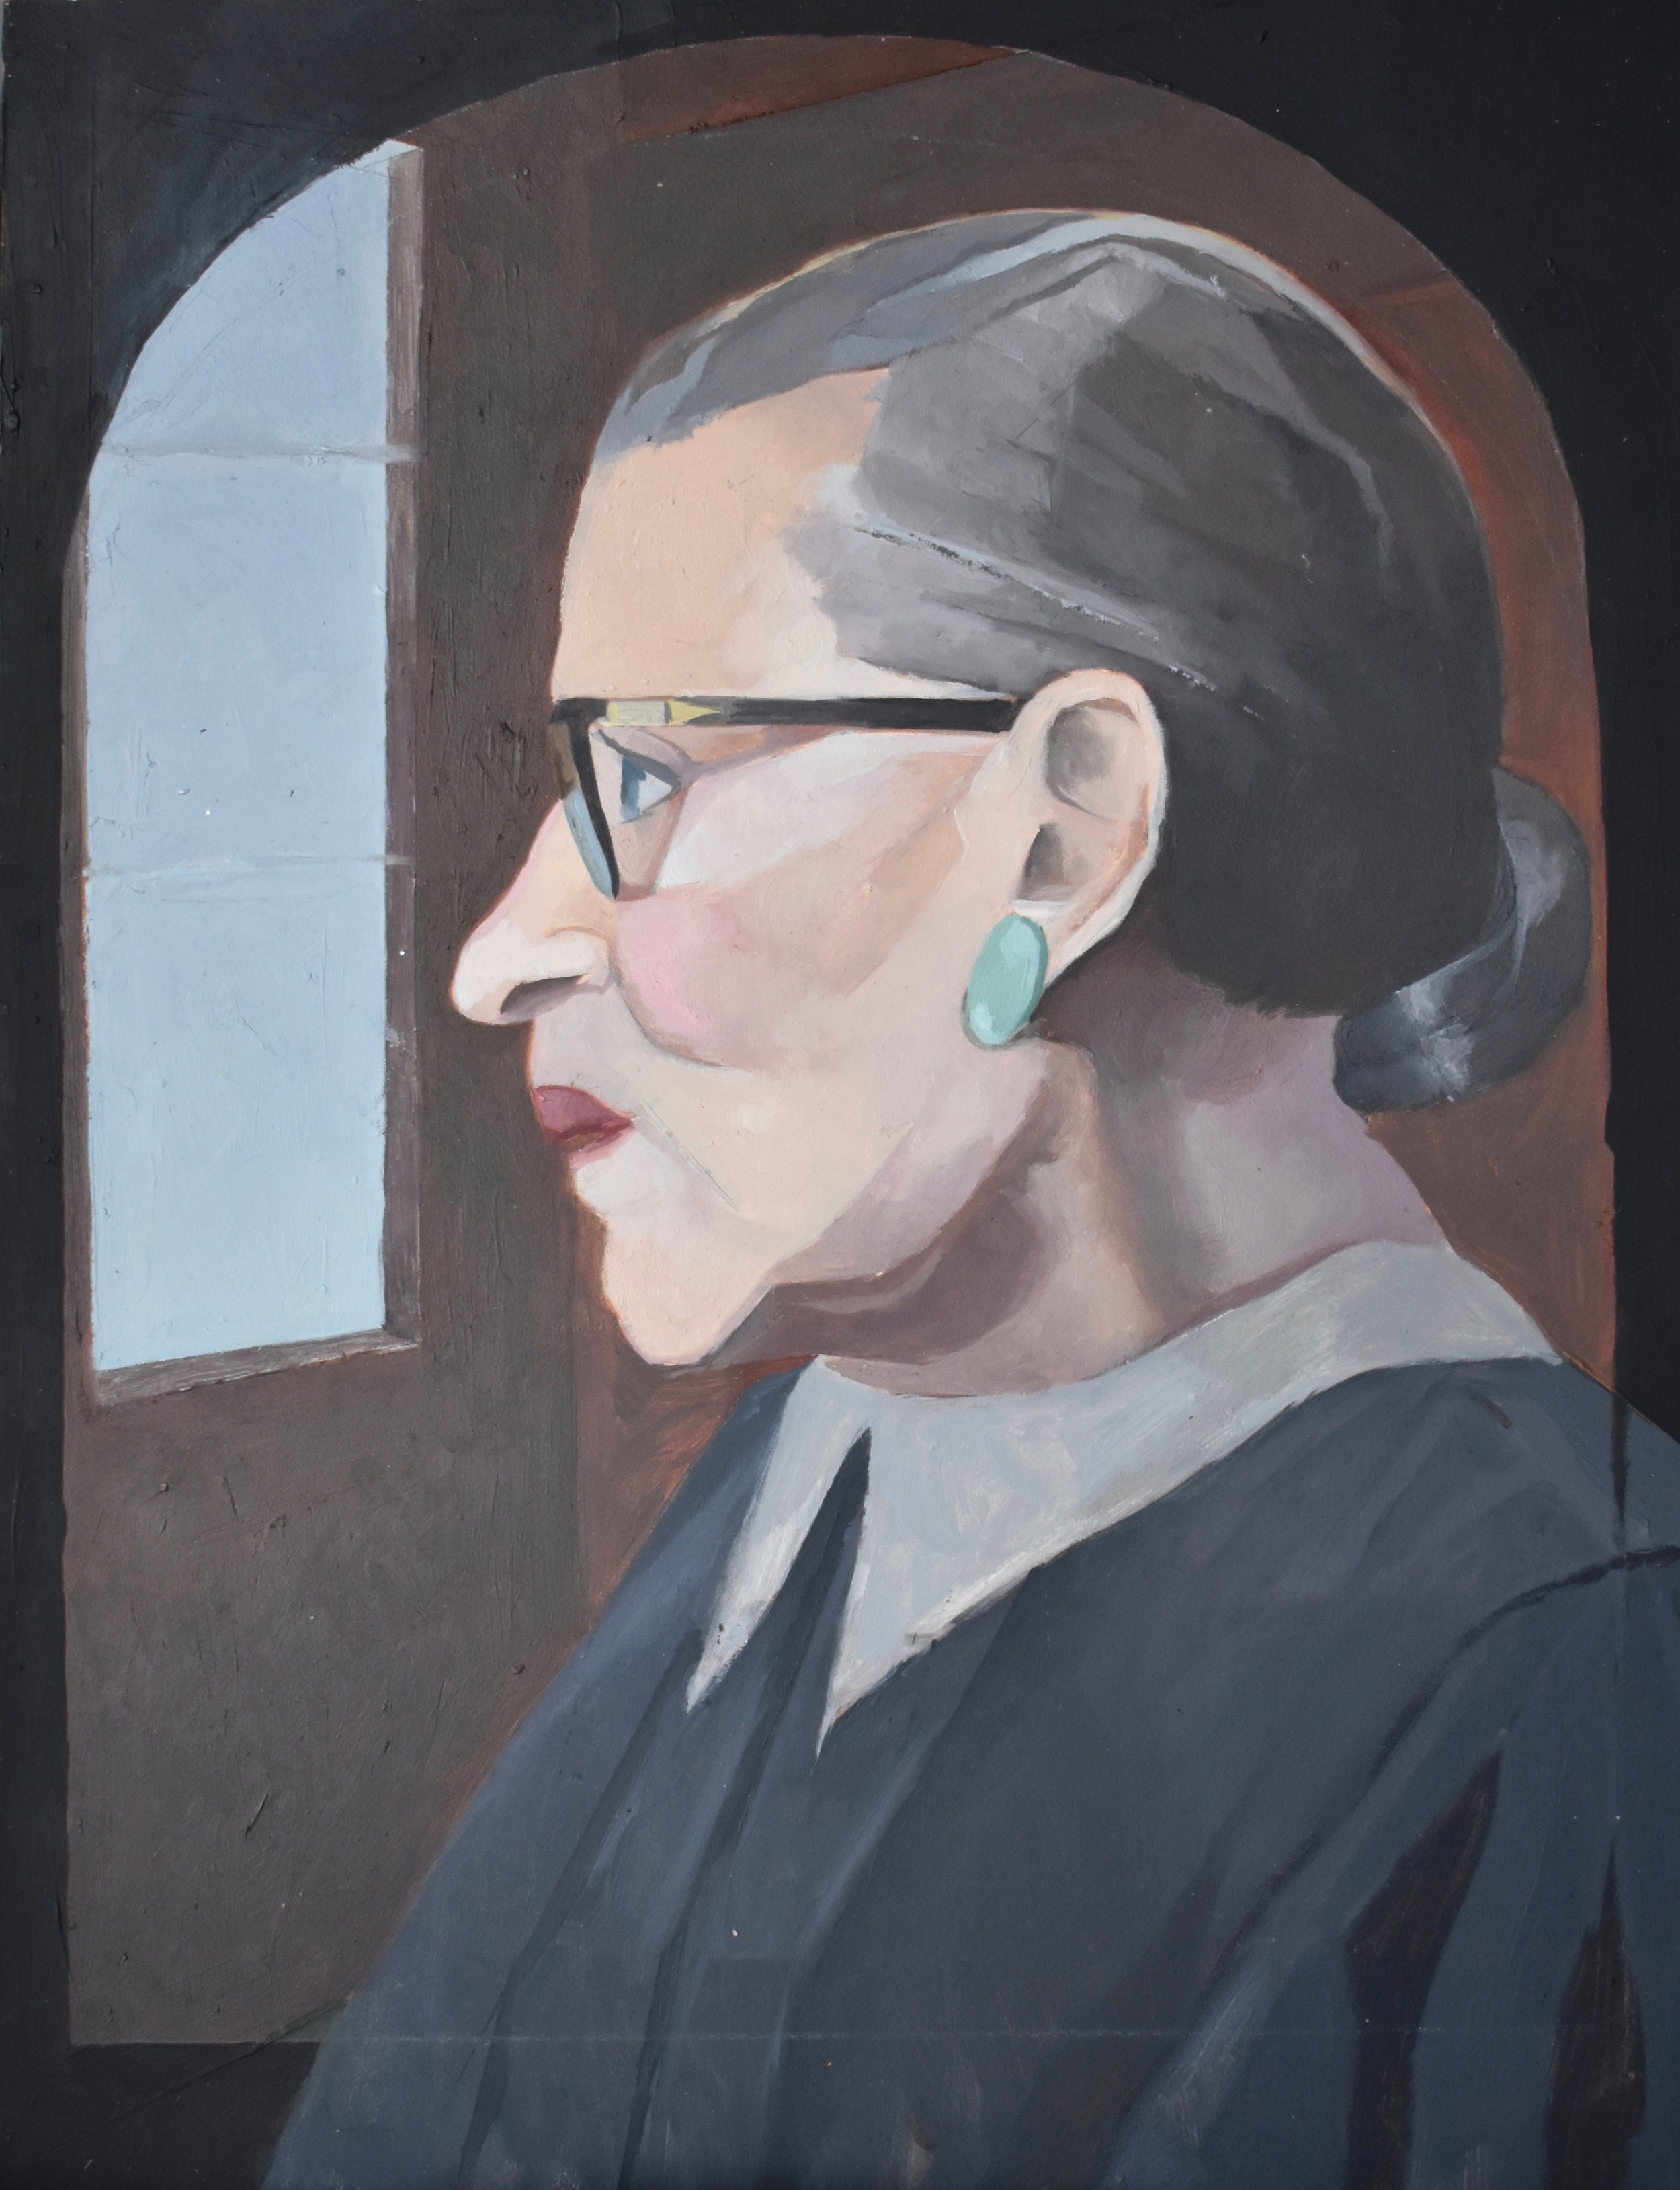 - Notorious: A Tribute to Ruth Bader Ginsburg2017Oil and marble dust on panel12 in. X 9 in.private pollection